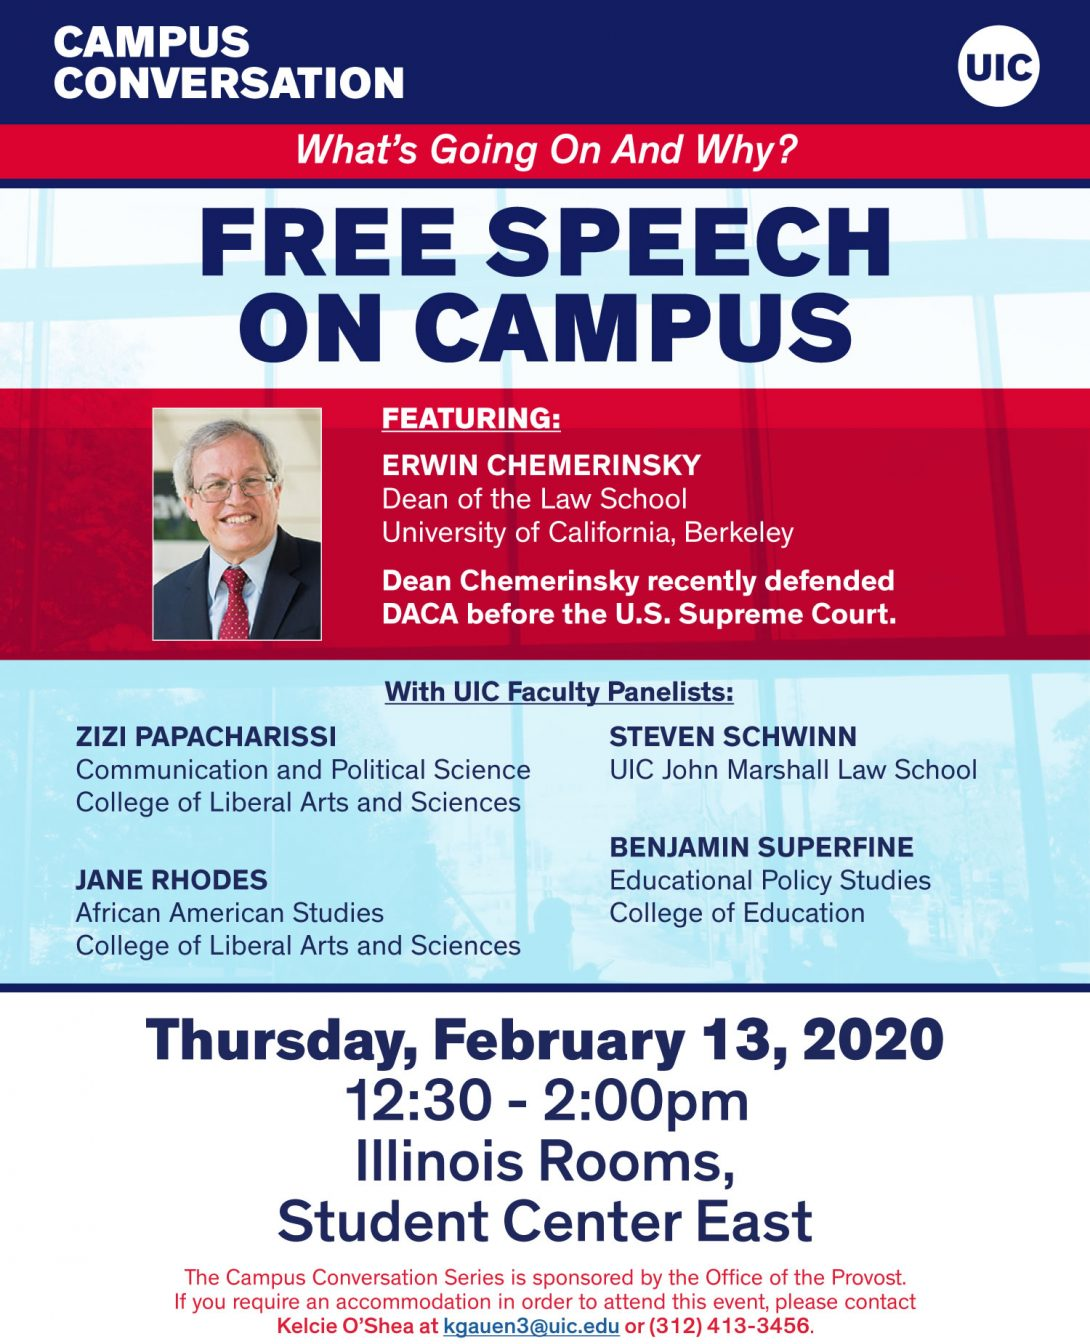 Campus Conversation Feb. 13, 2020: Free Speech on Campus